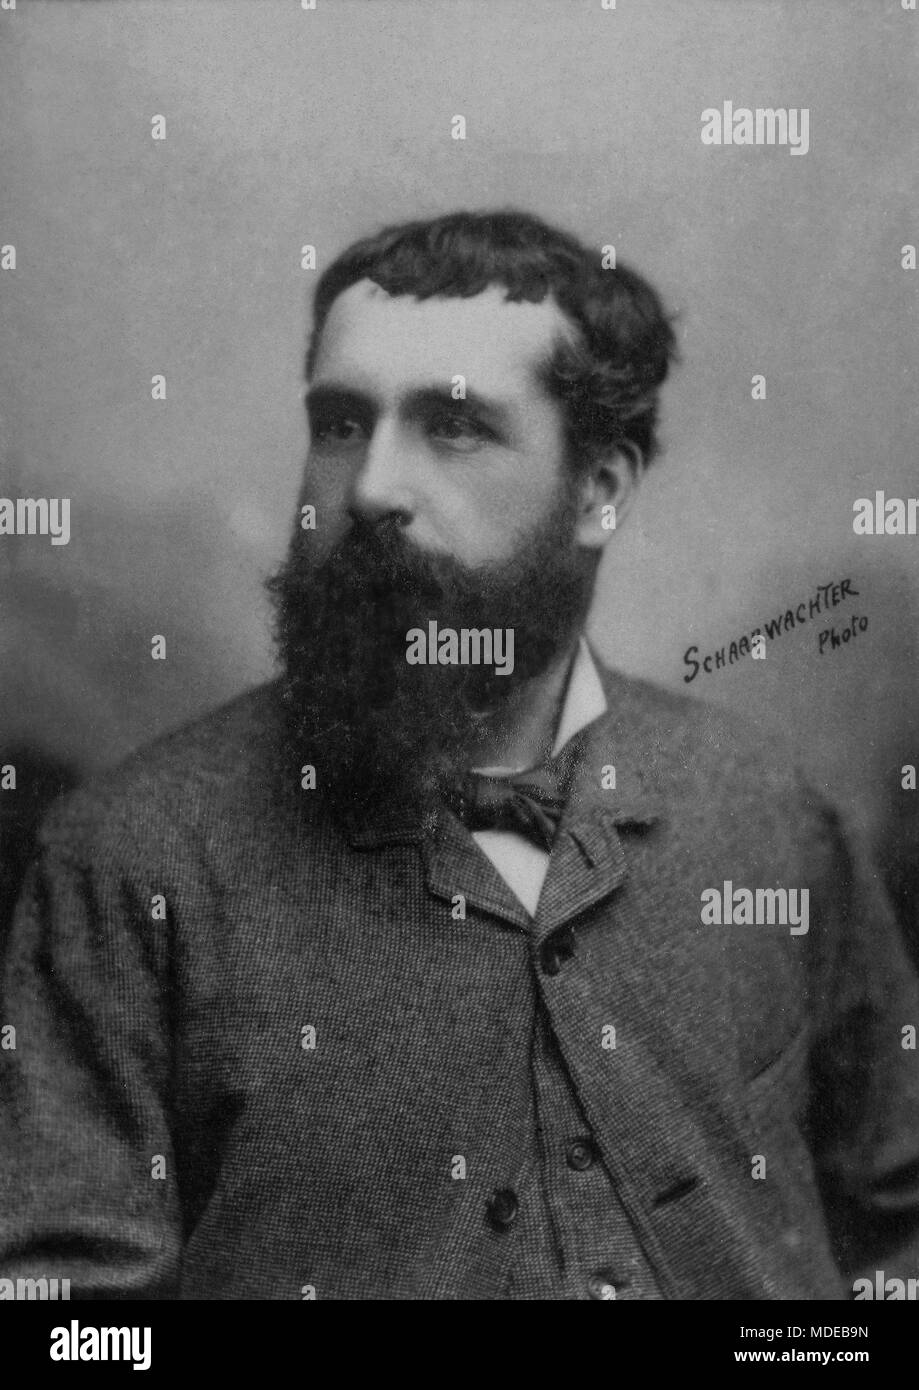 Claude Monet Portrait Stock Photos Amp Claude Monet Portrait